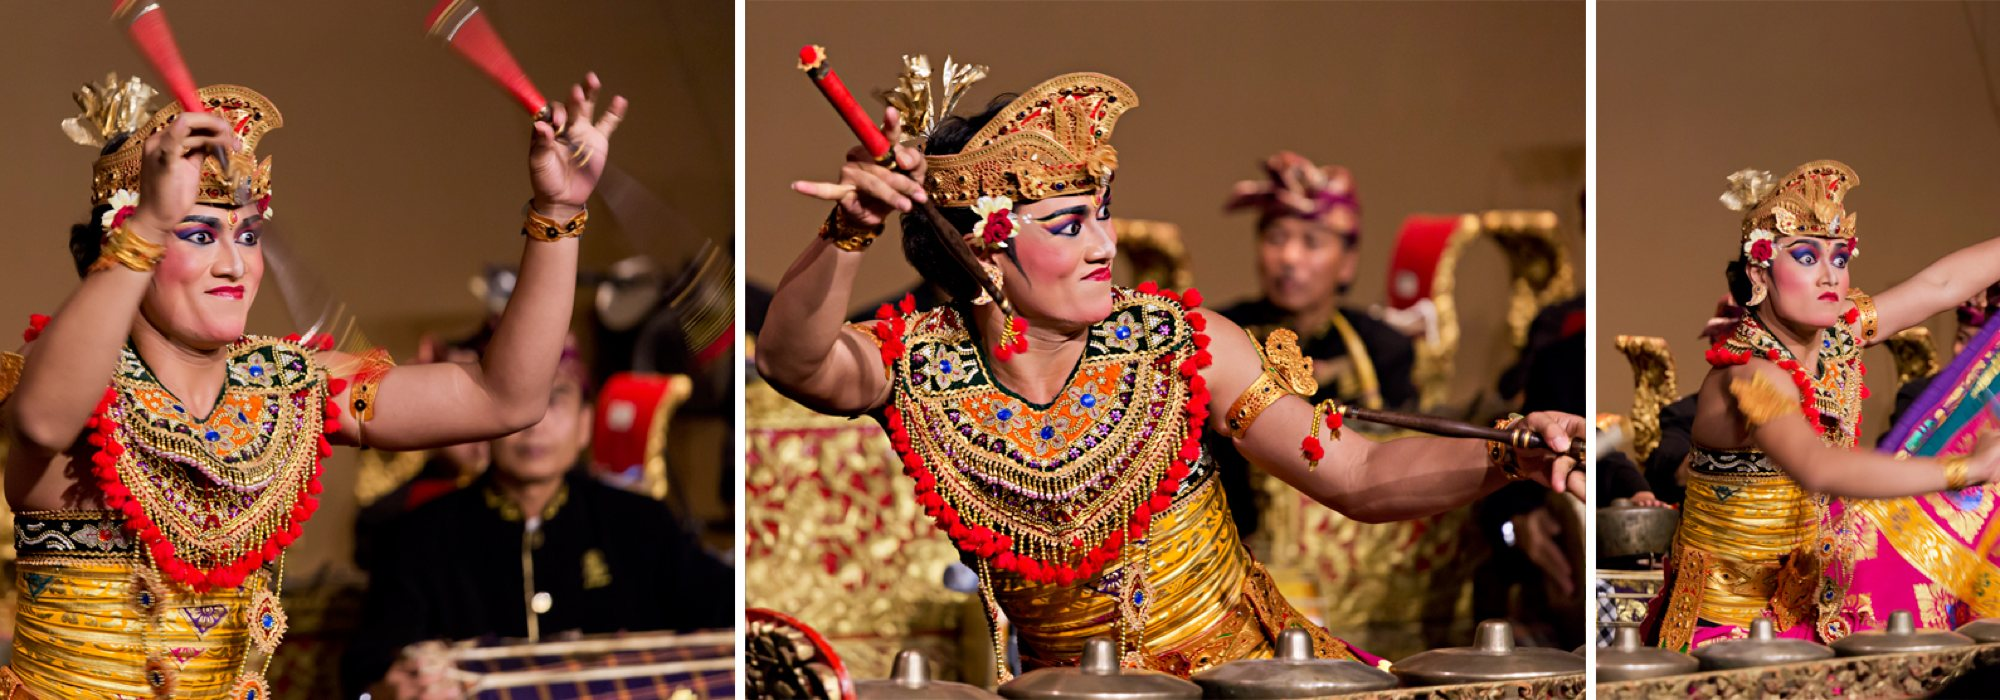 Performer in bright costume twirling gamelan mallets